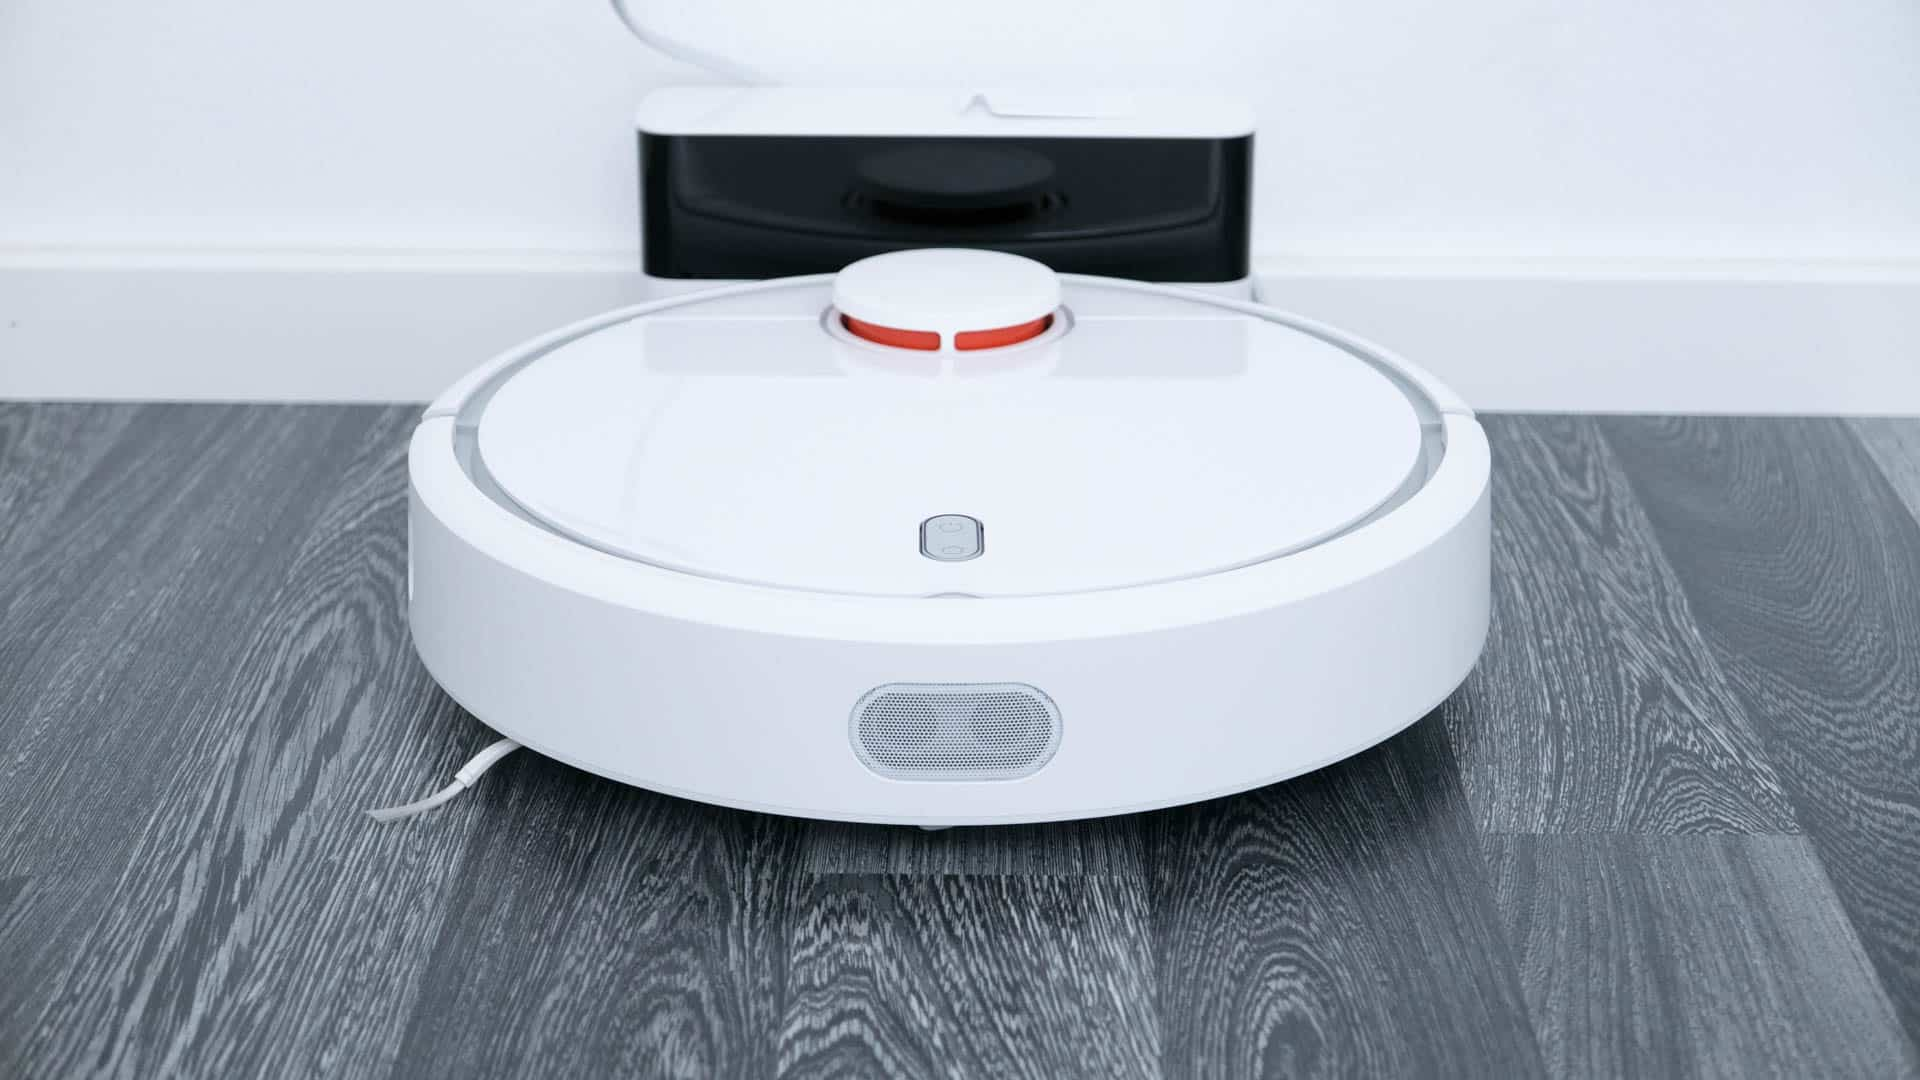 xiaomi mi staubsauger roboter im test smarthomeassistent. Black Bedroom Furniture Sets. Home Design Ideas